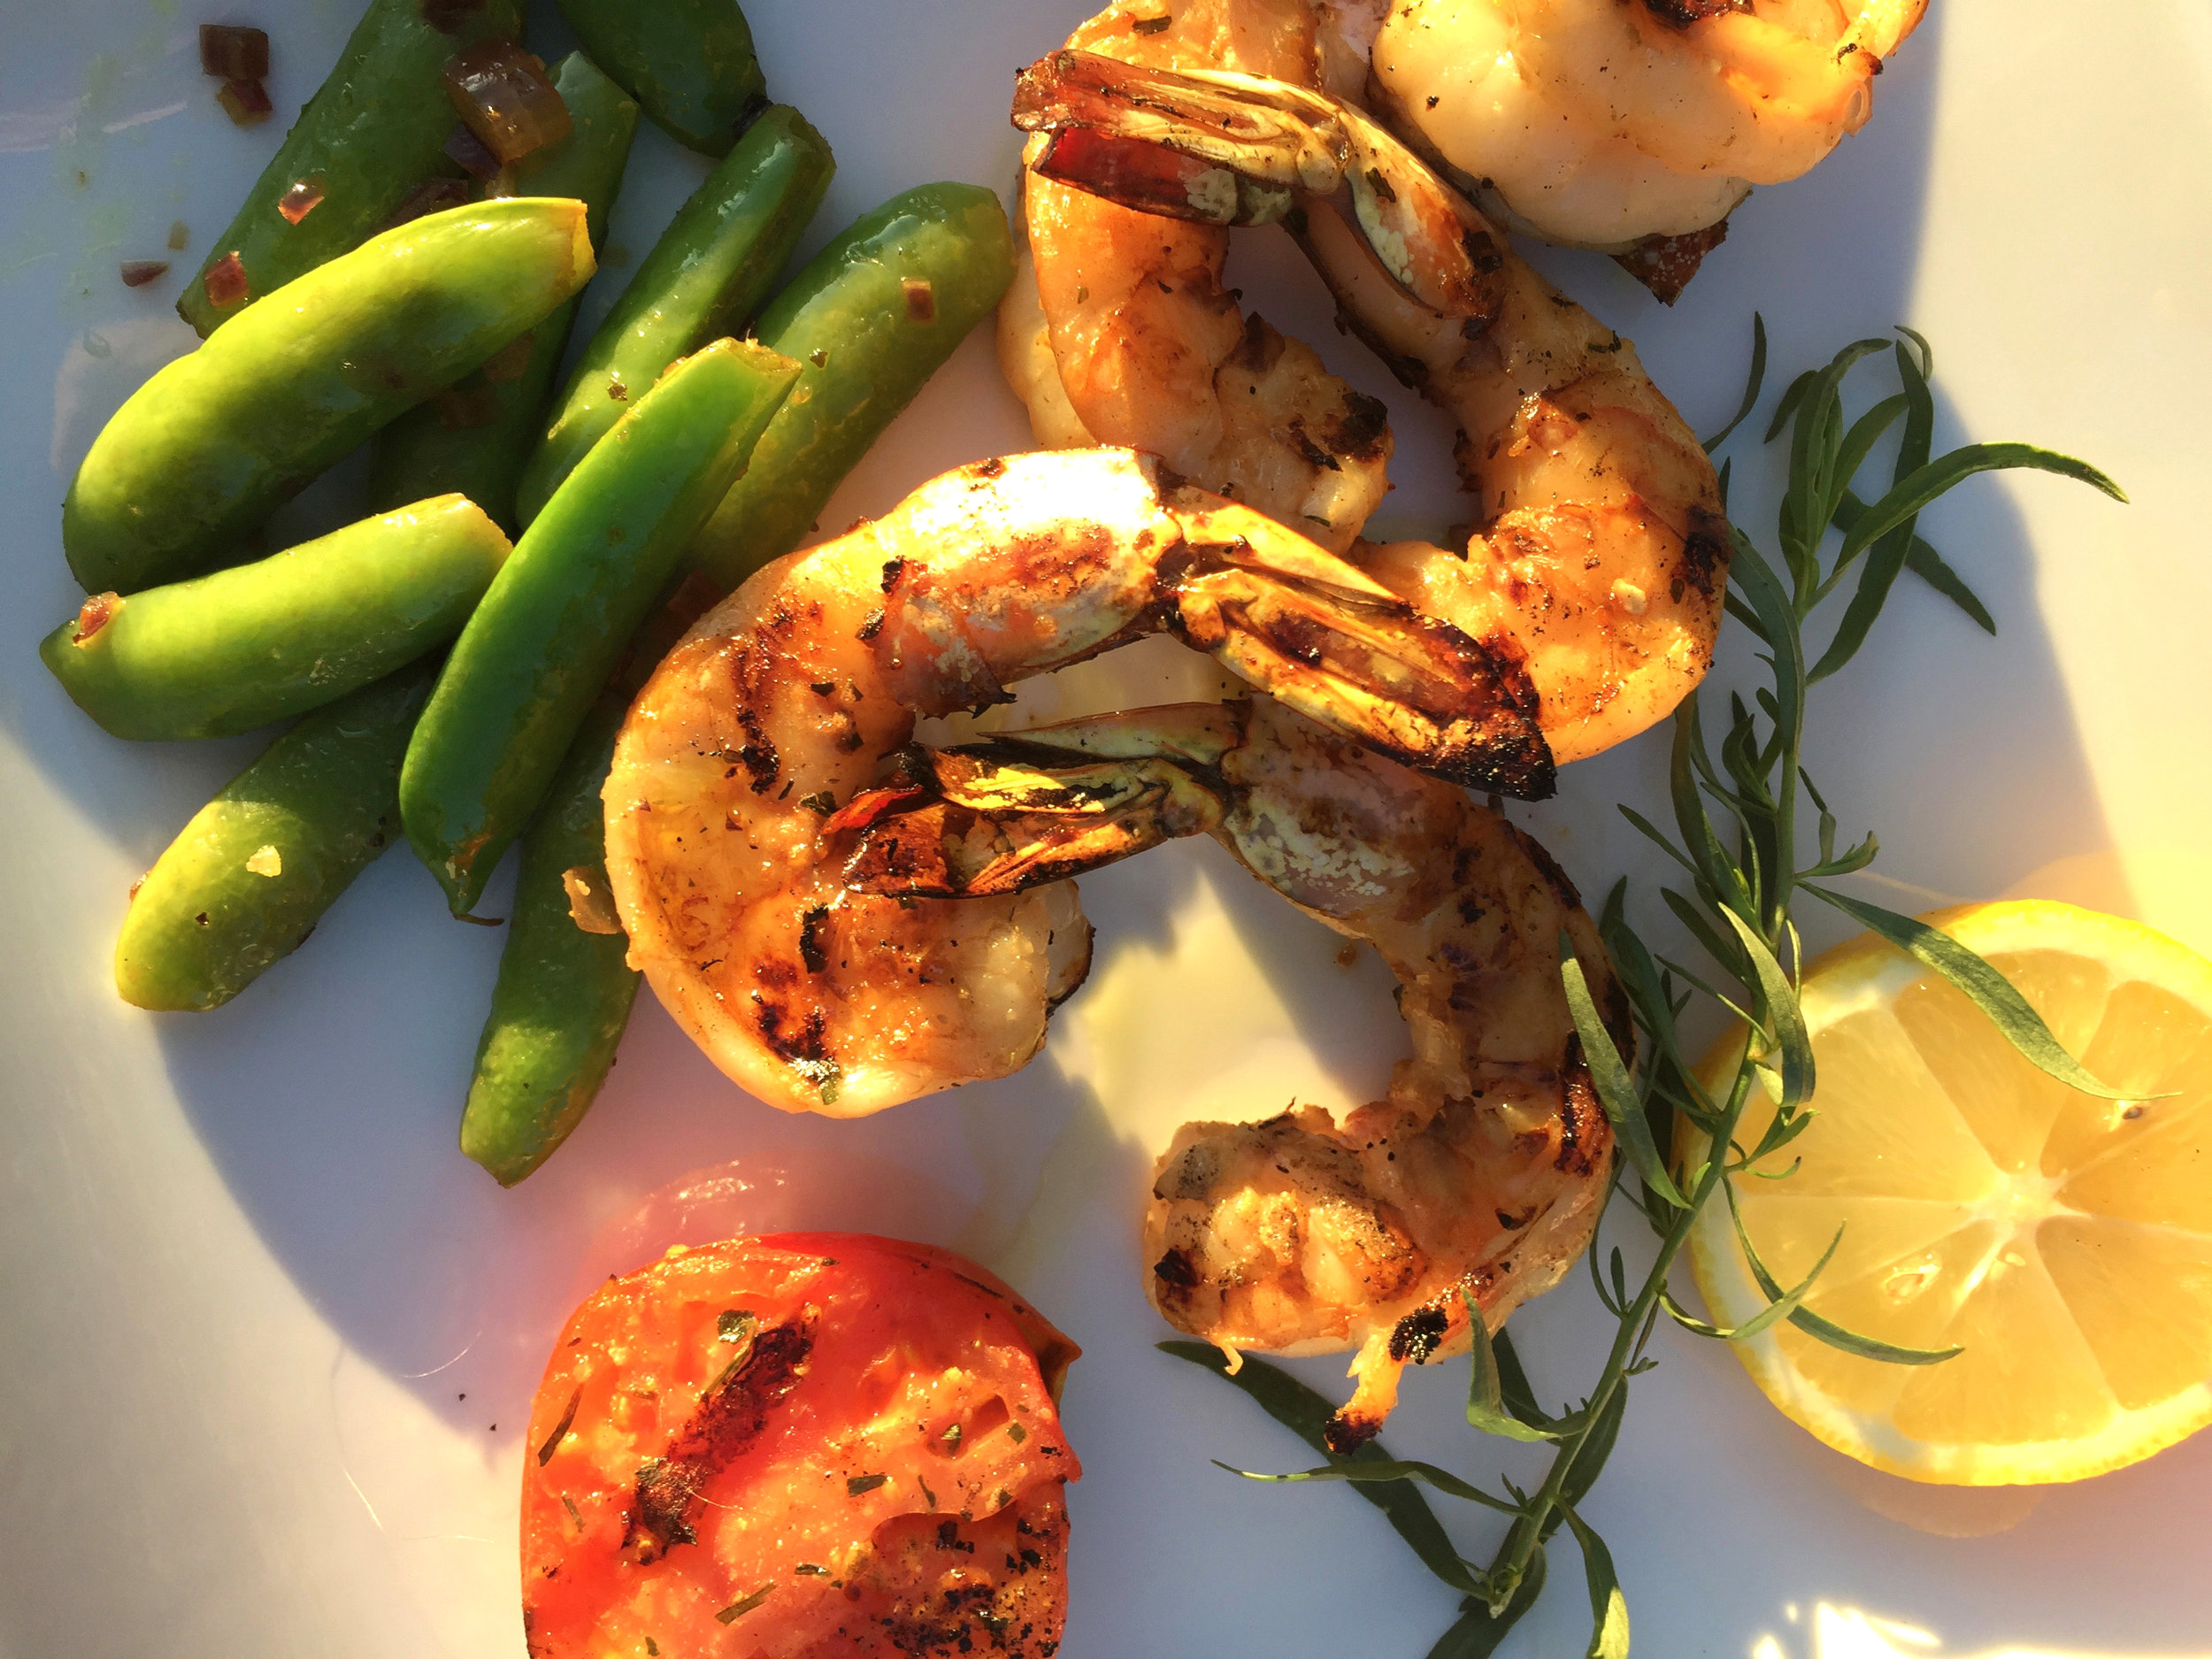 INGREDIENTS:  8 large prawns (3.4 #)  3 Tbsp Olive oil  ½ tsp Chef Josef's Citrus Tarragon Blend  ½ tsp. Lemon juice  Fresh Tarragon leaves (optional)    Clean and peel prawns. Marinate in olive oil and   Chef Josef's Citrus Tarragon   seasoning. Blend and let sit for ½ hour.    Preheat grill or broiler.  Place on hot grill or broiler for 3 minutes on each side or until the prawns turn lightly pink.  Over cooking will turn them in tough and dry.    Finish with a light squeeze of Lemon juice and optional fresh Tarragon on top.